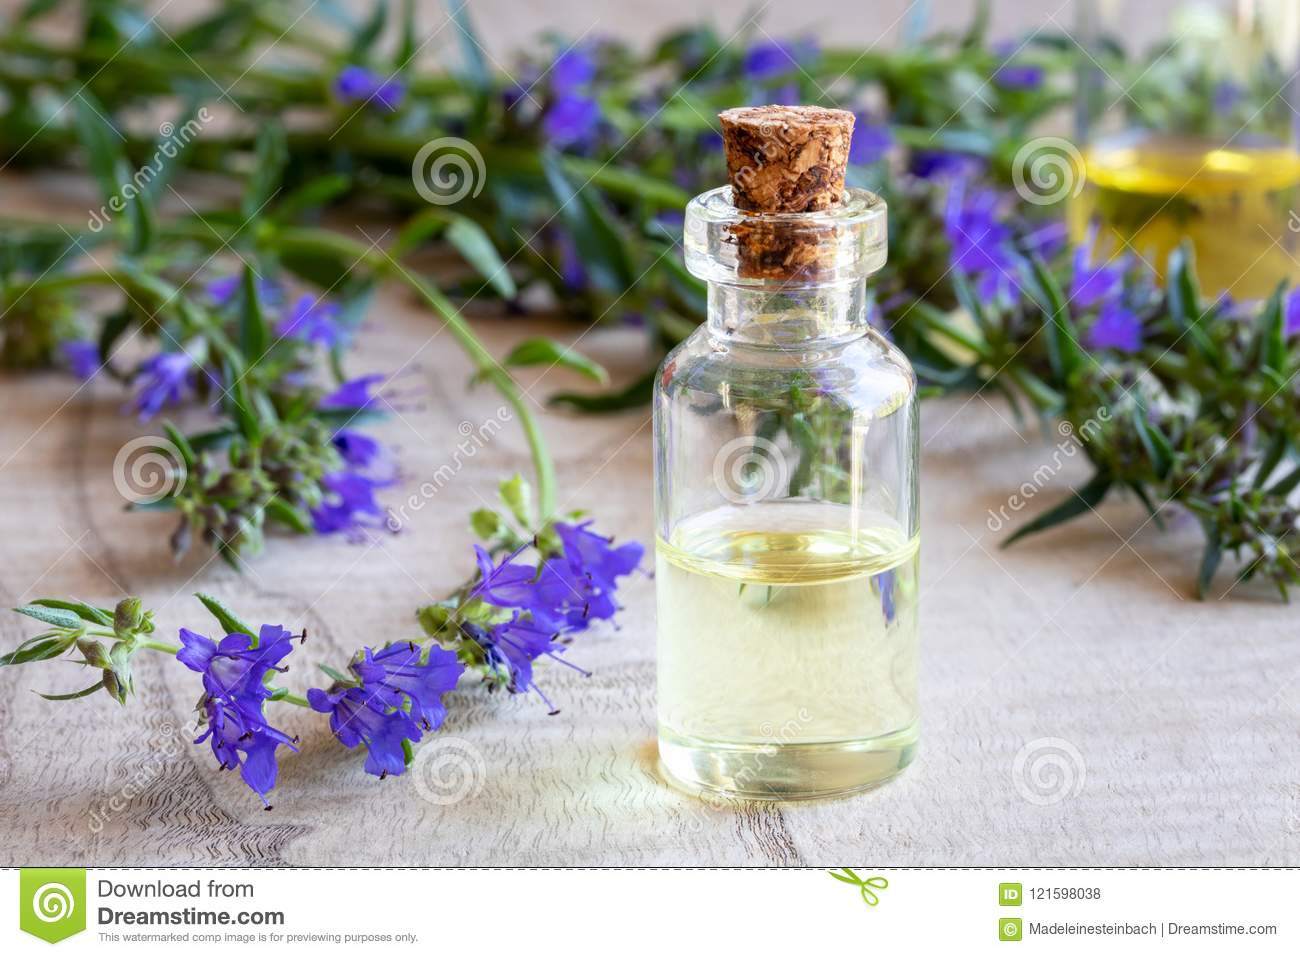 A bottle of hyssop essential oil with fresh blooming hyssop